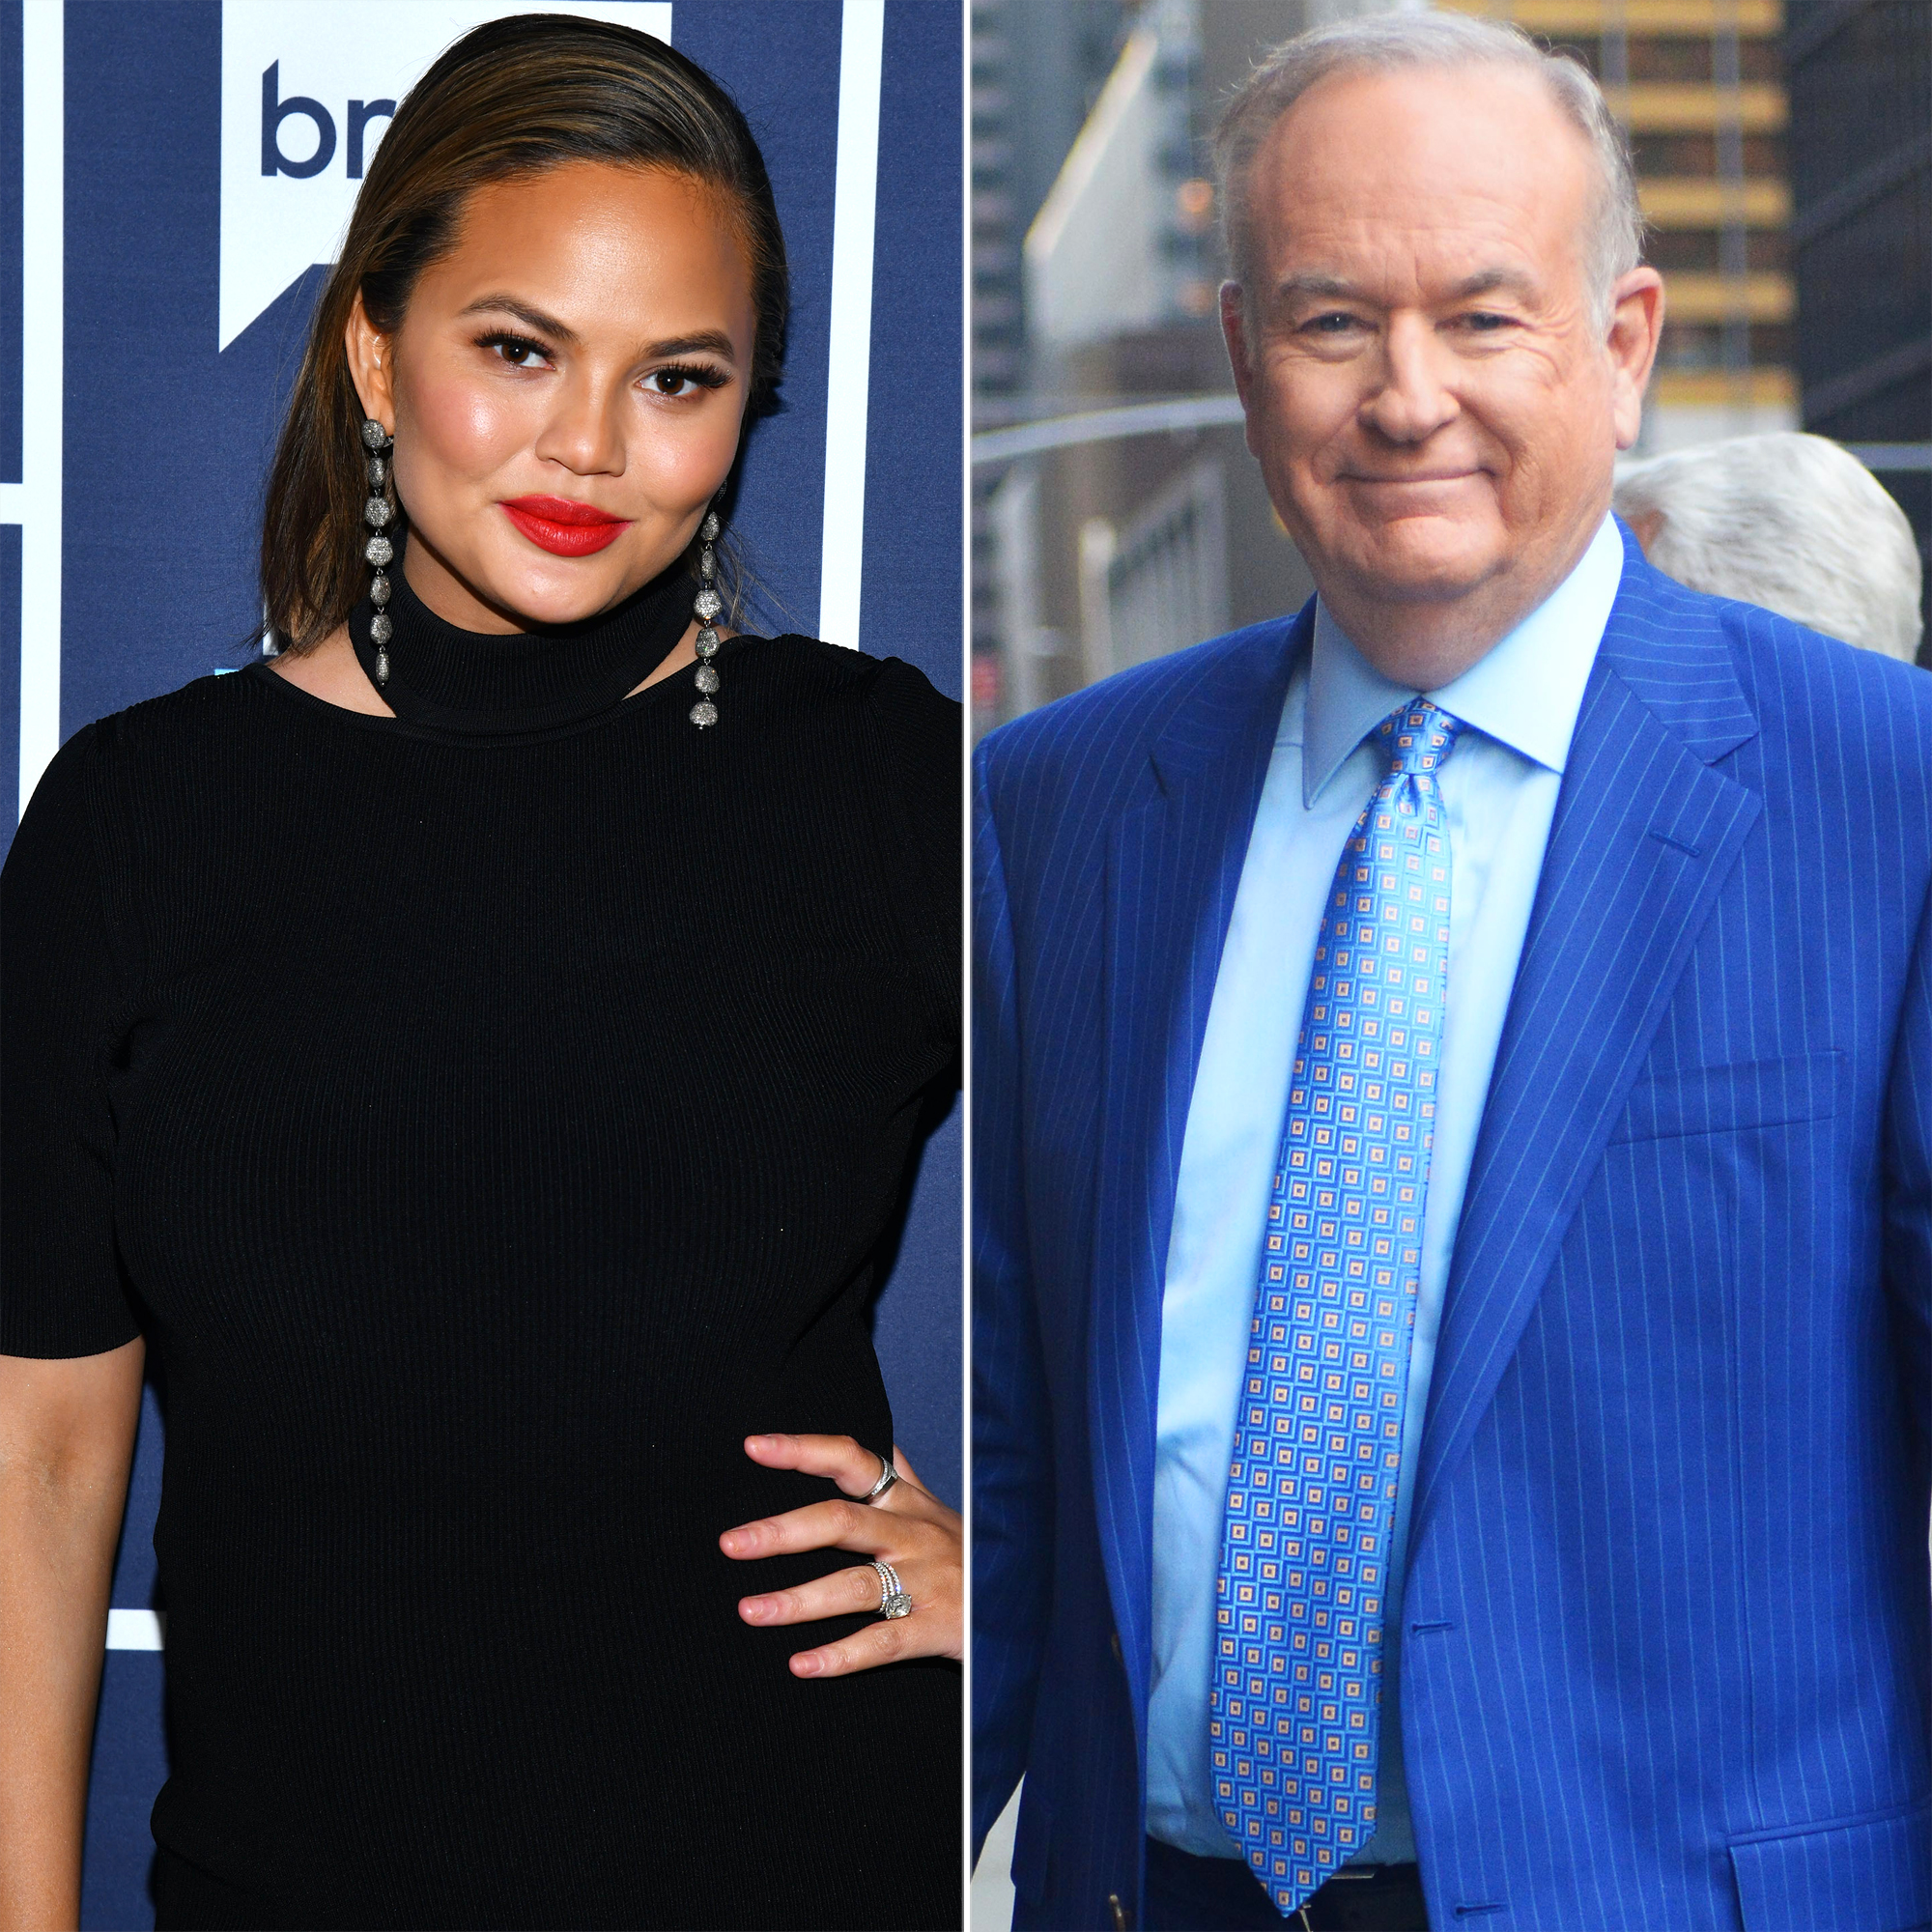 Chrissy Teigen wins Twitter again with brutal takedown of Bill O'Reilly